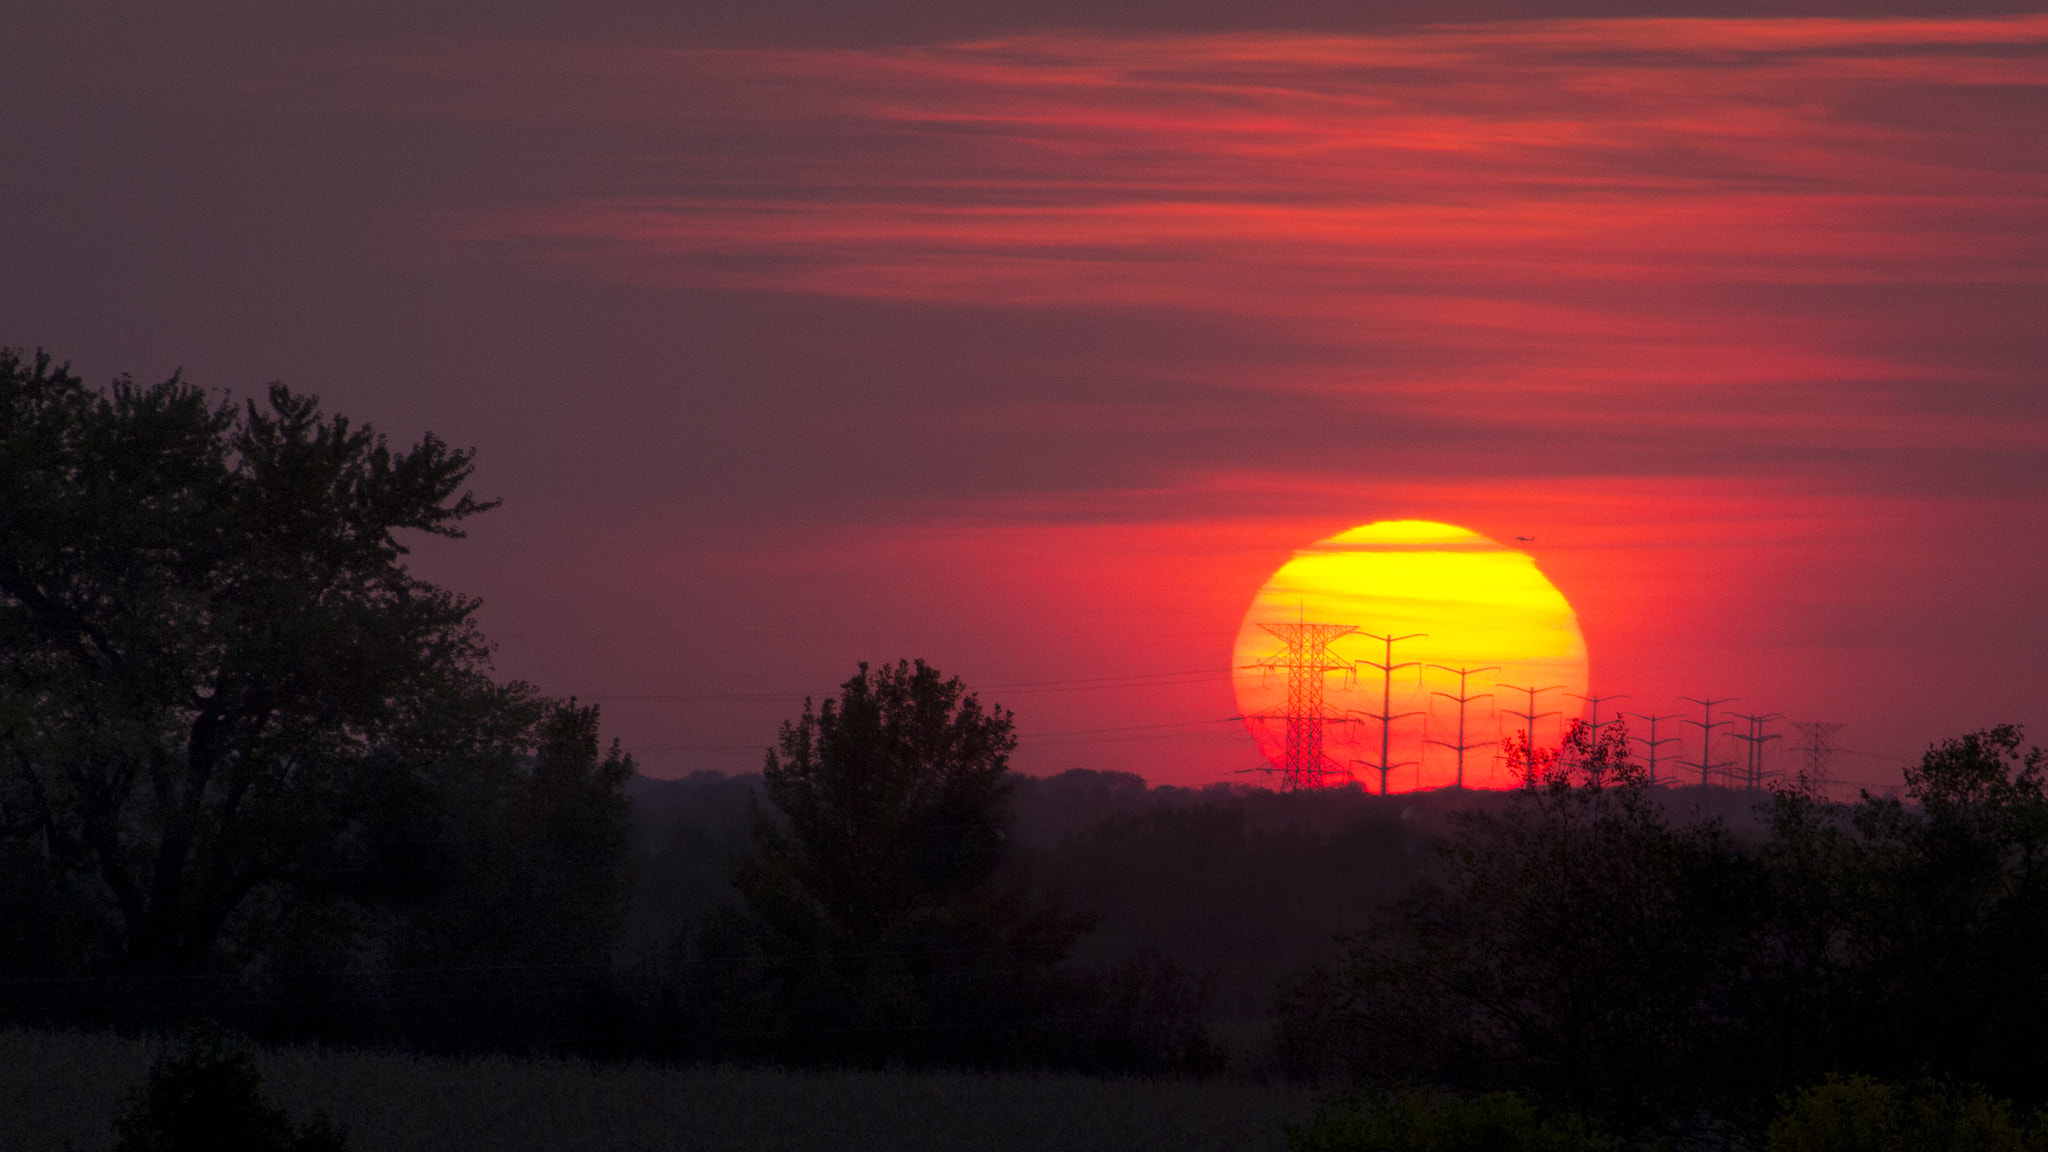 Photograph A Sunset to remember by Anjan Upadhya on 500px